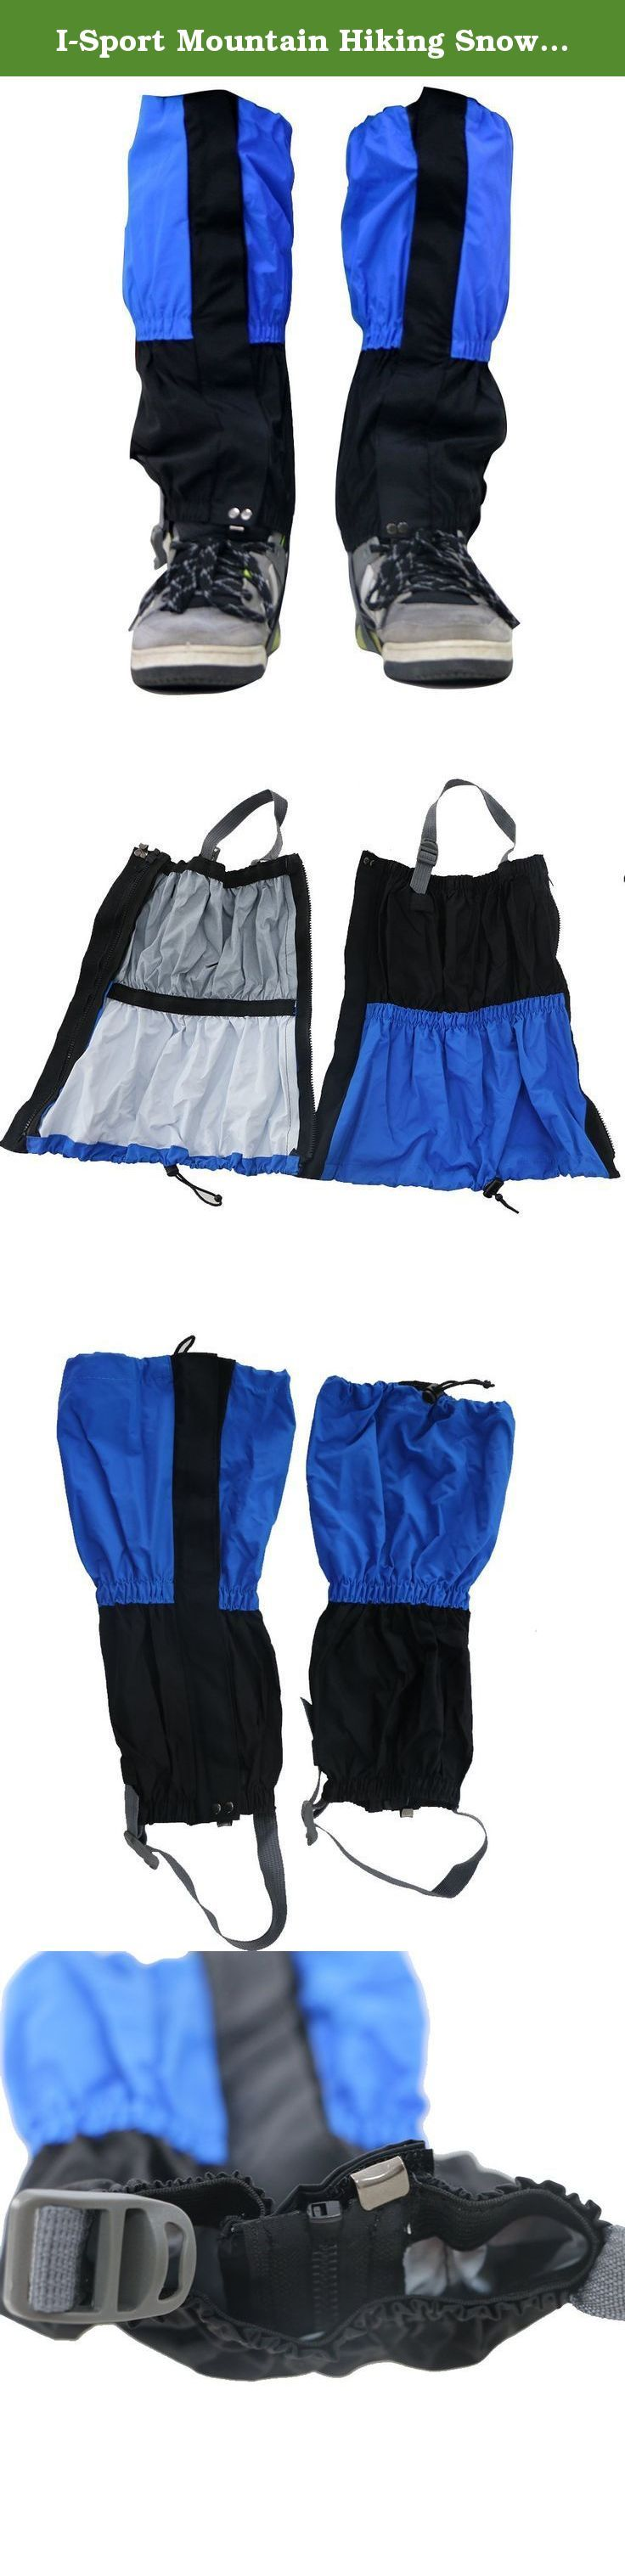 I-Sport Mountain Hiking Snow Gaiters for Men and Women Leg Protection from Sharp Rocks and Bush Waterproof Leg Gaiters for Backpacking Hunting Hiking (blue). Gooids Description: Mountain Hiking Snow Gaiters for Men and Women Leg Protection from Sharp Rocks and Bush Waterproof Leg Gaiters for Backpacking Hunting Hiking. 1.Breathable waterproof fabric. 2. Protect your boots and pants from water, snow, rain, mud and wind. 3. Designed with adjustable elastic band for convenient and firm...